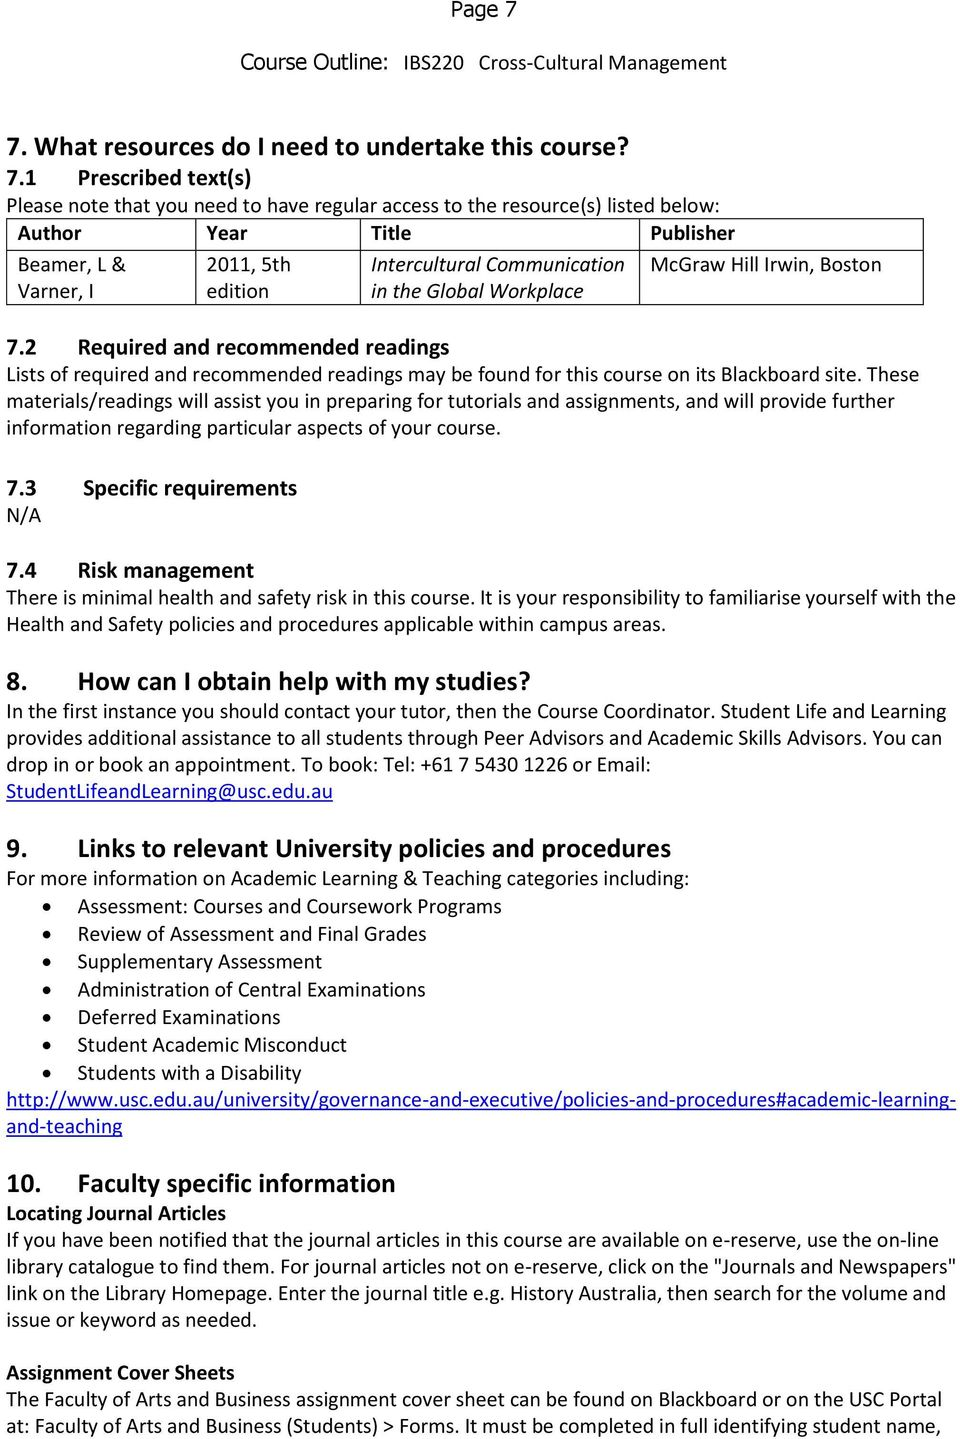 communication and culture coursework titles